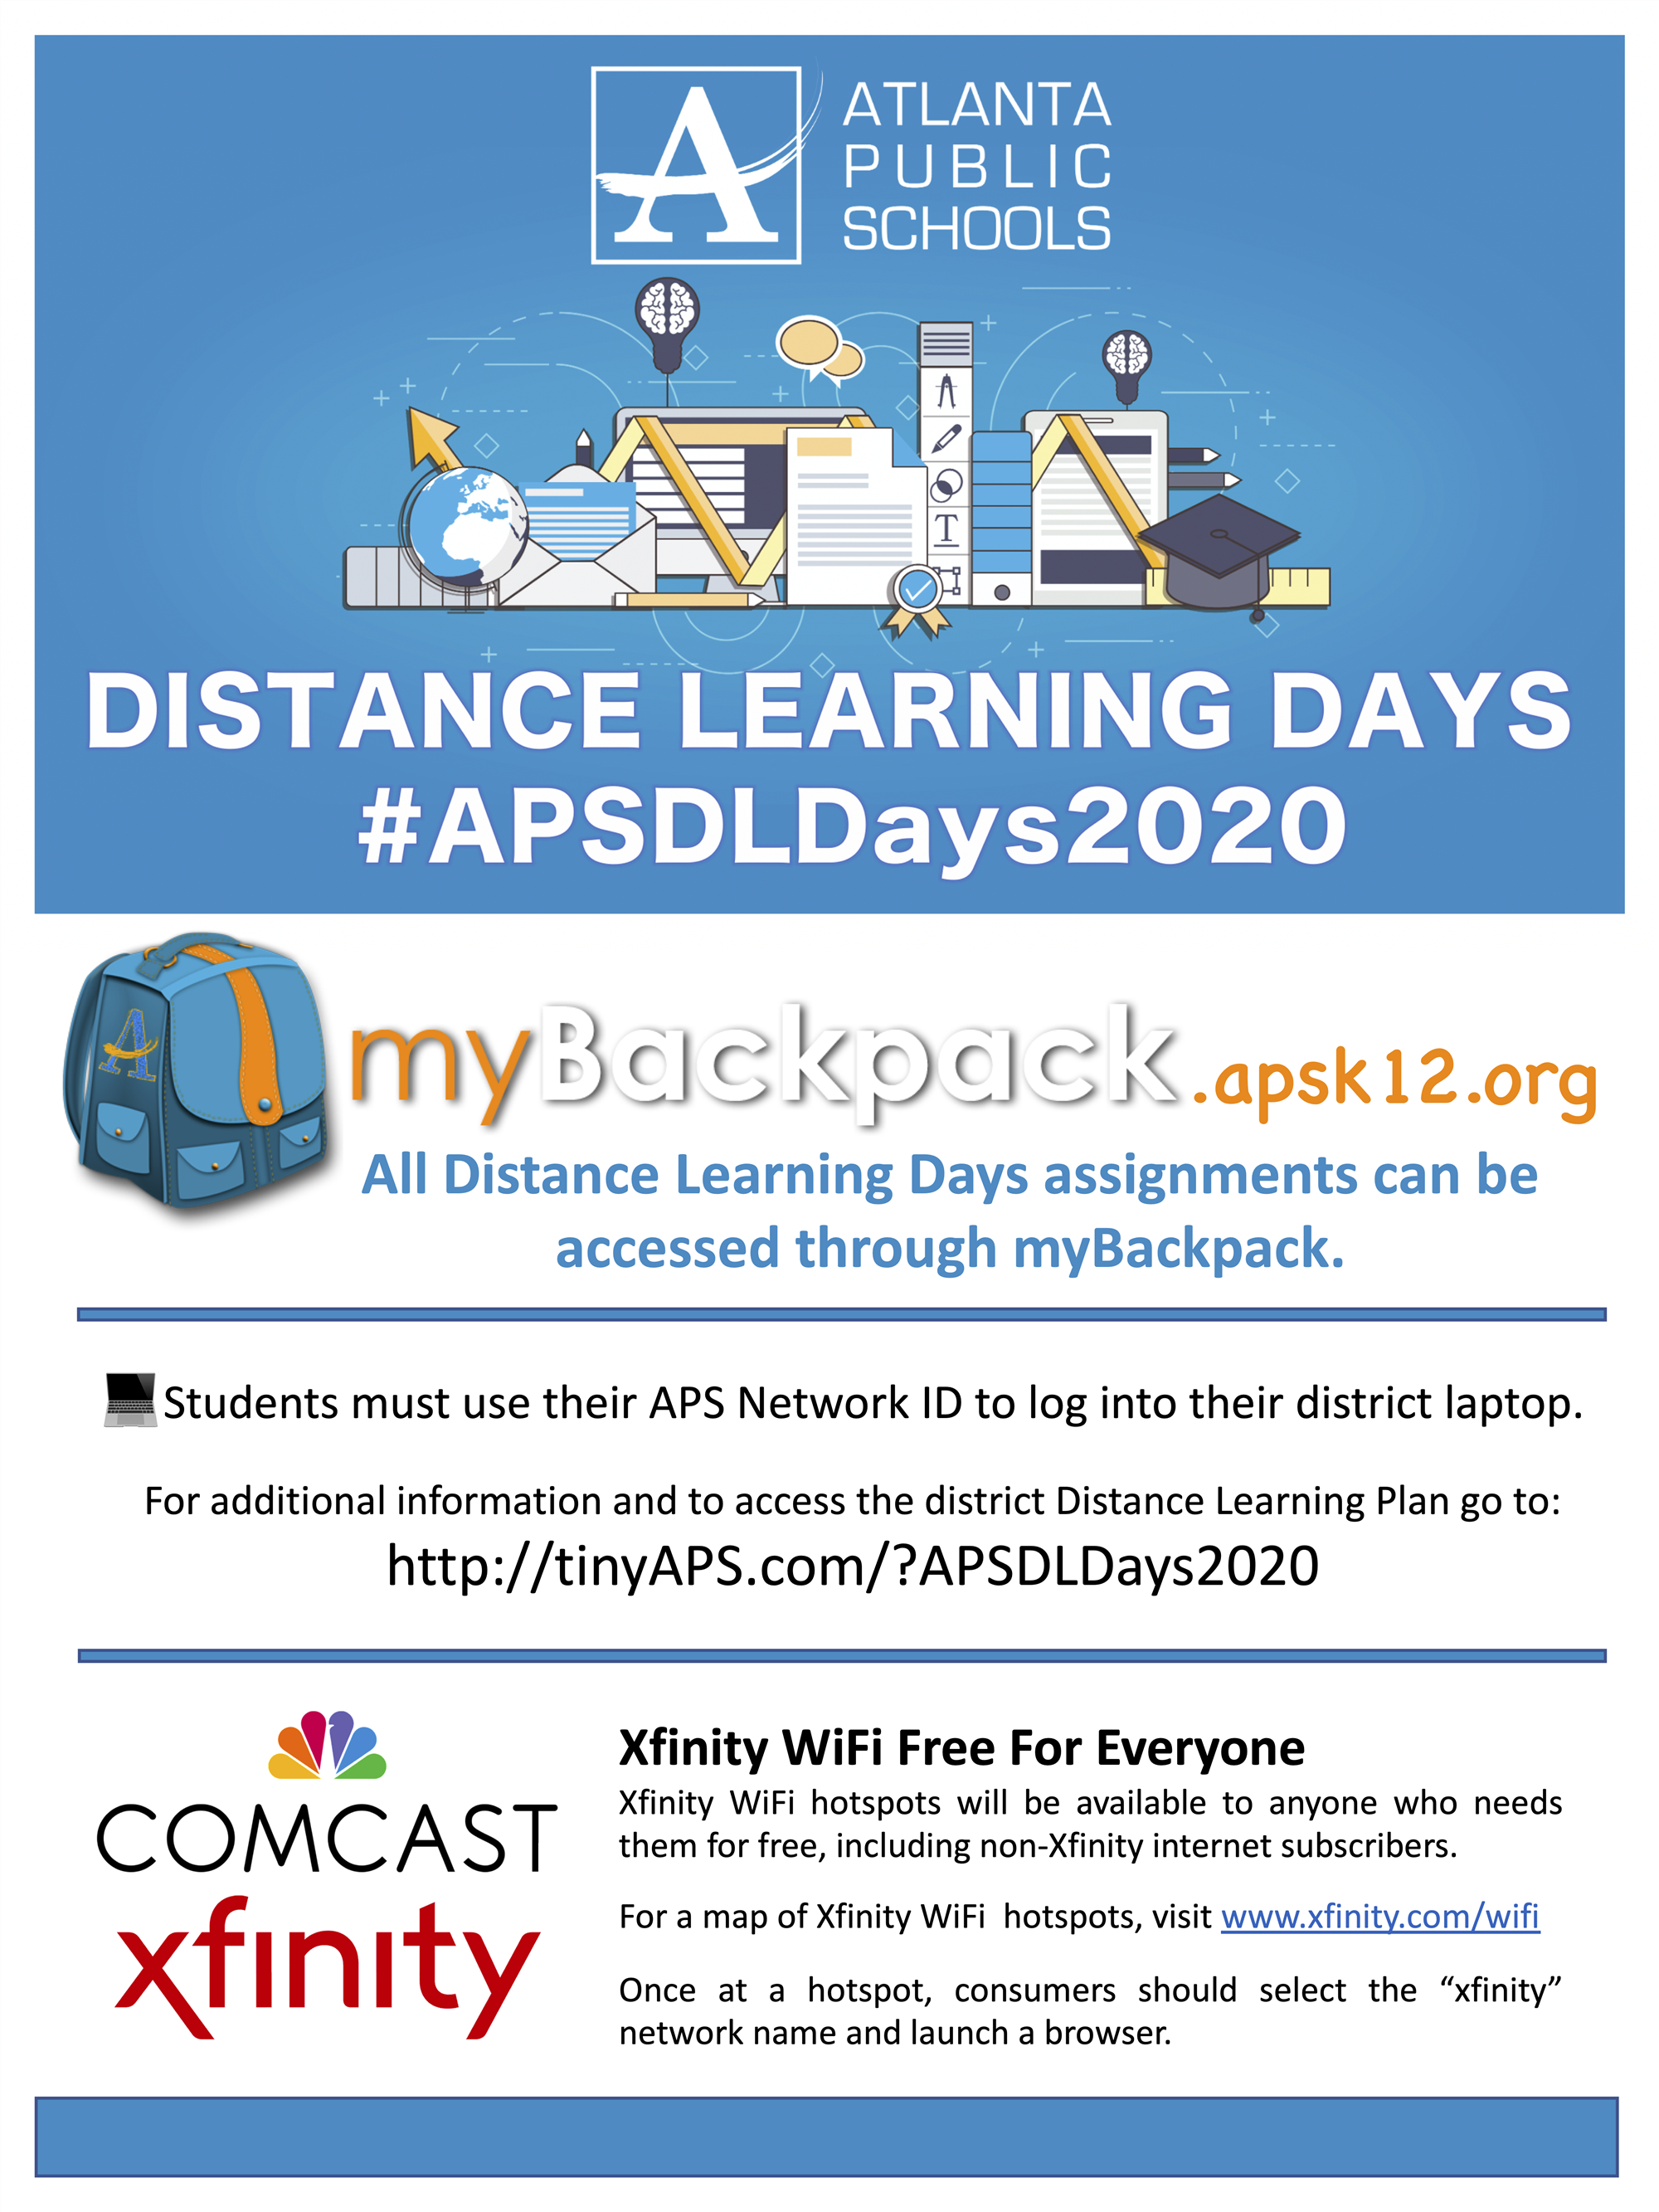 APS Distance Learning via mybackpack.apsk12.org or http://tinyAPS.com/?APSDLDays2020